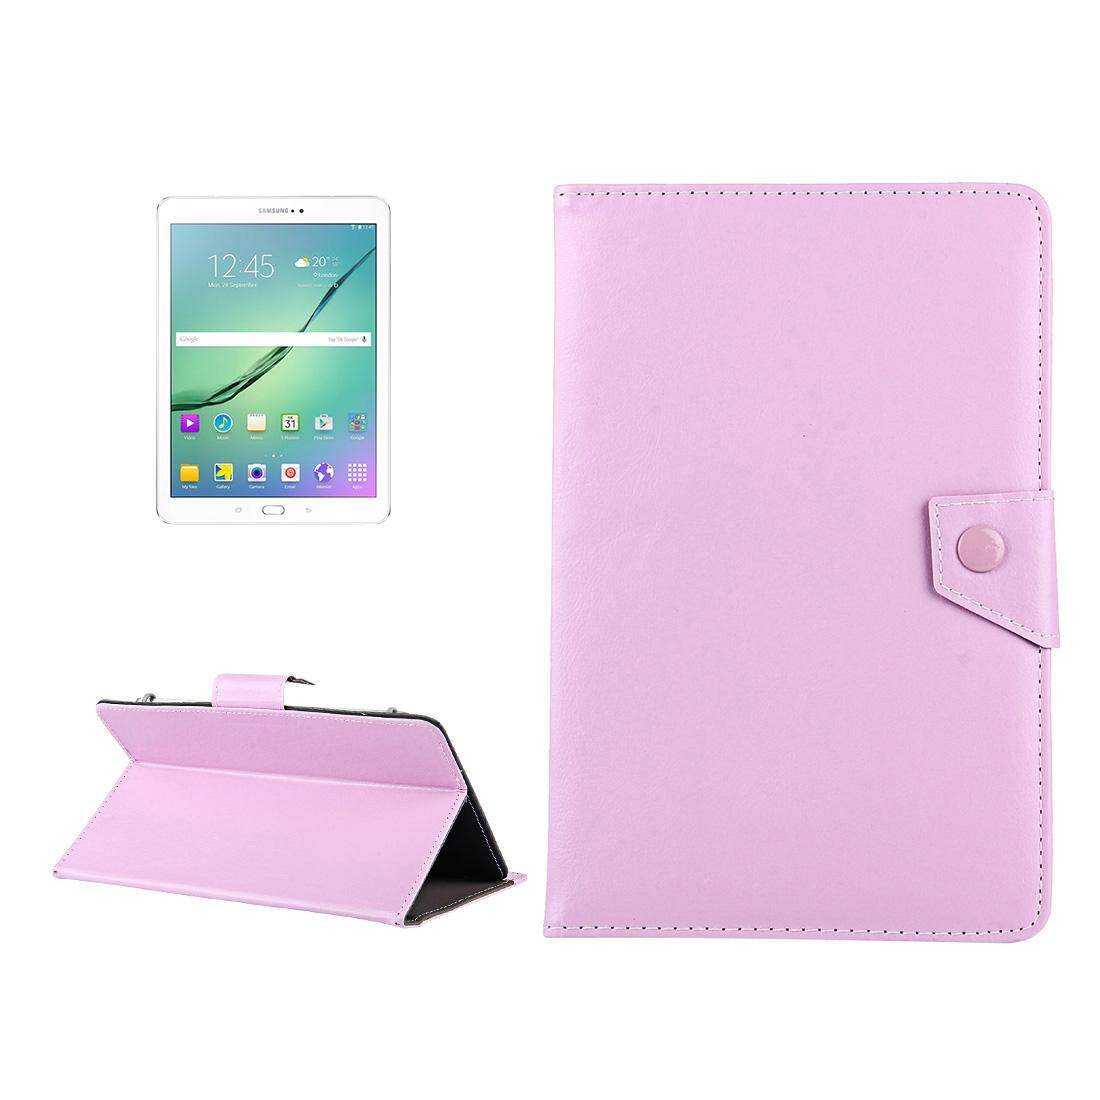 10 inch Tablets Leather Case Crazy Horse Texture Protective Case Shell with Holder for Asus ZenPad 10 Z300C, Huawei MediaPad M2 10.0-A01W, Cube IWORK10(Pink) - intl